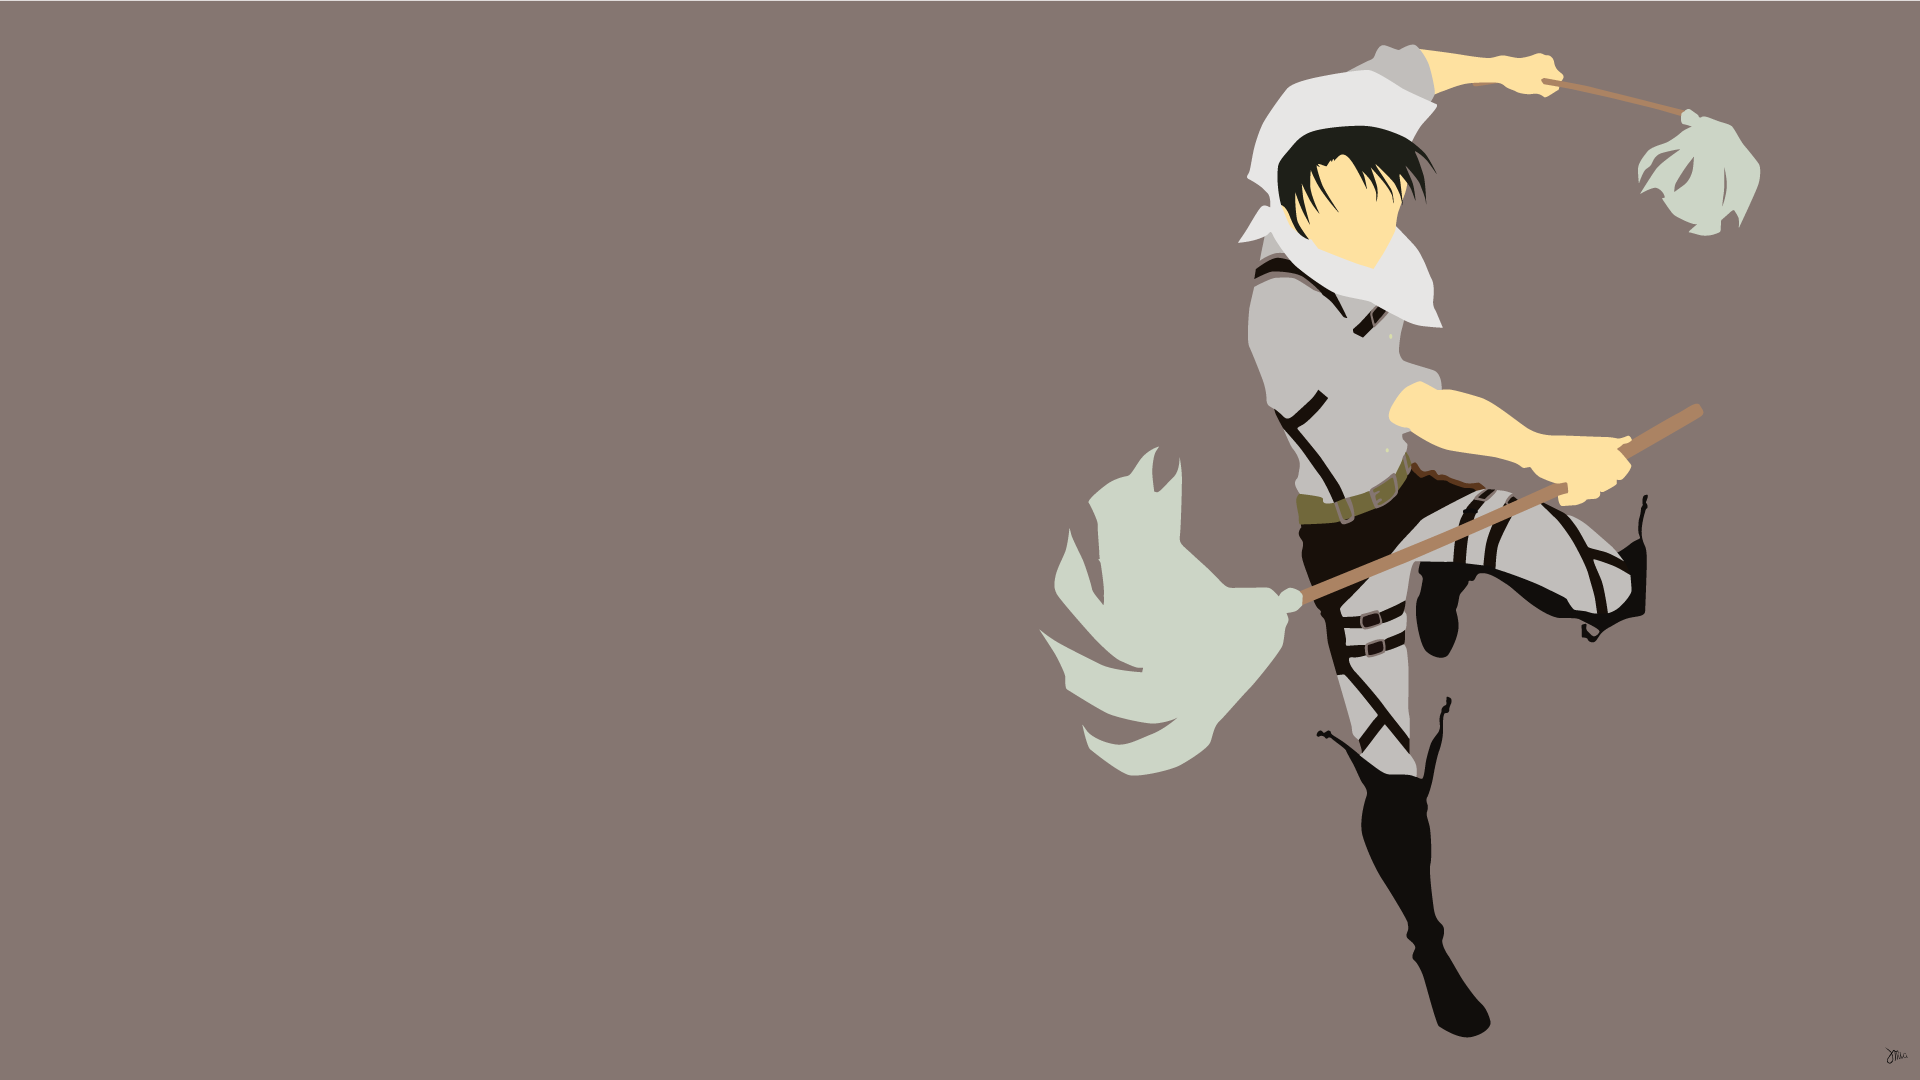 Anime Attack On Titan Levi Ackerman Wallpaper Attack On Titan Anime Minimalist Wallpaper Anime Wallpaper